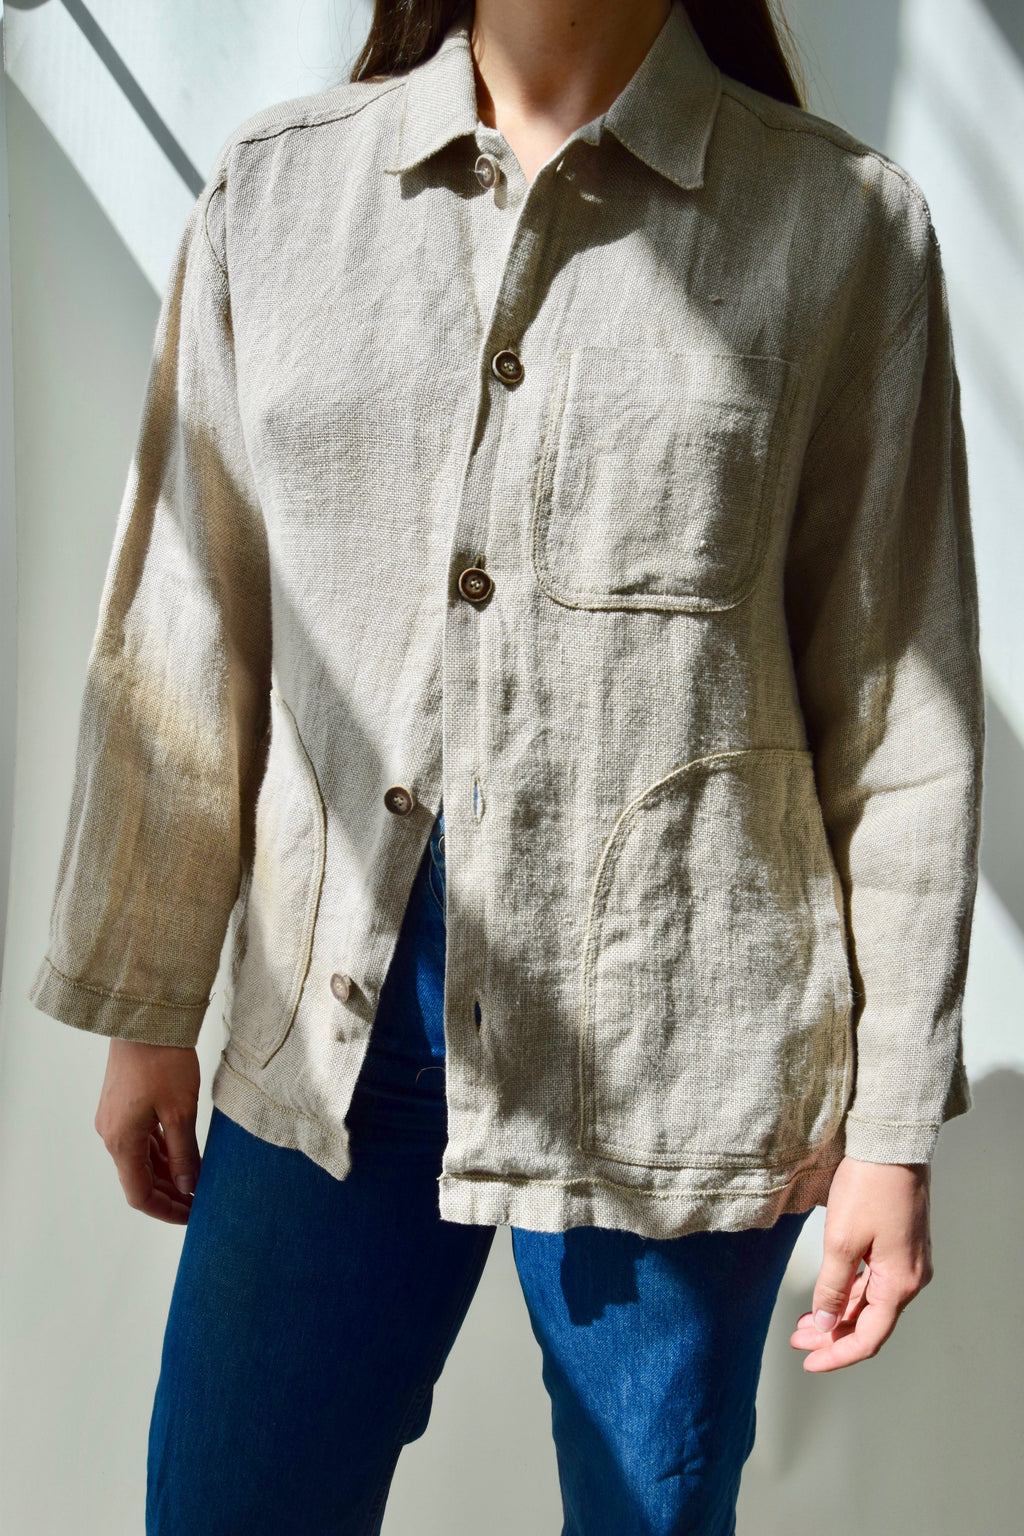 Everyday Ease Linen Spring Jacket